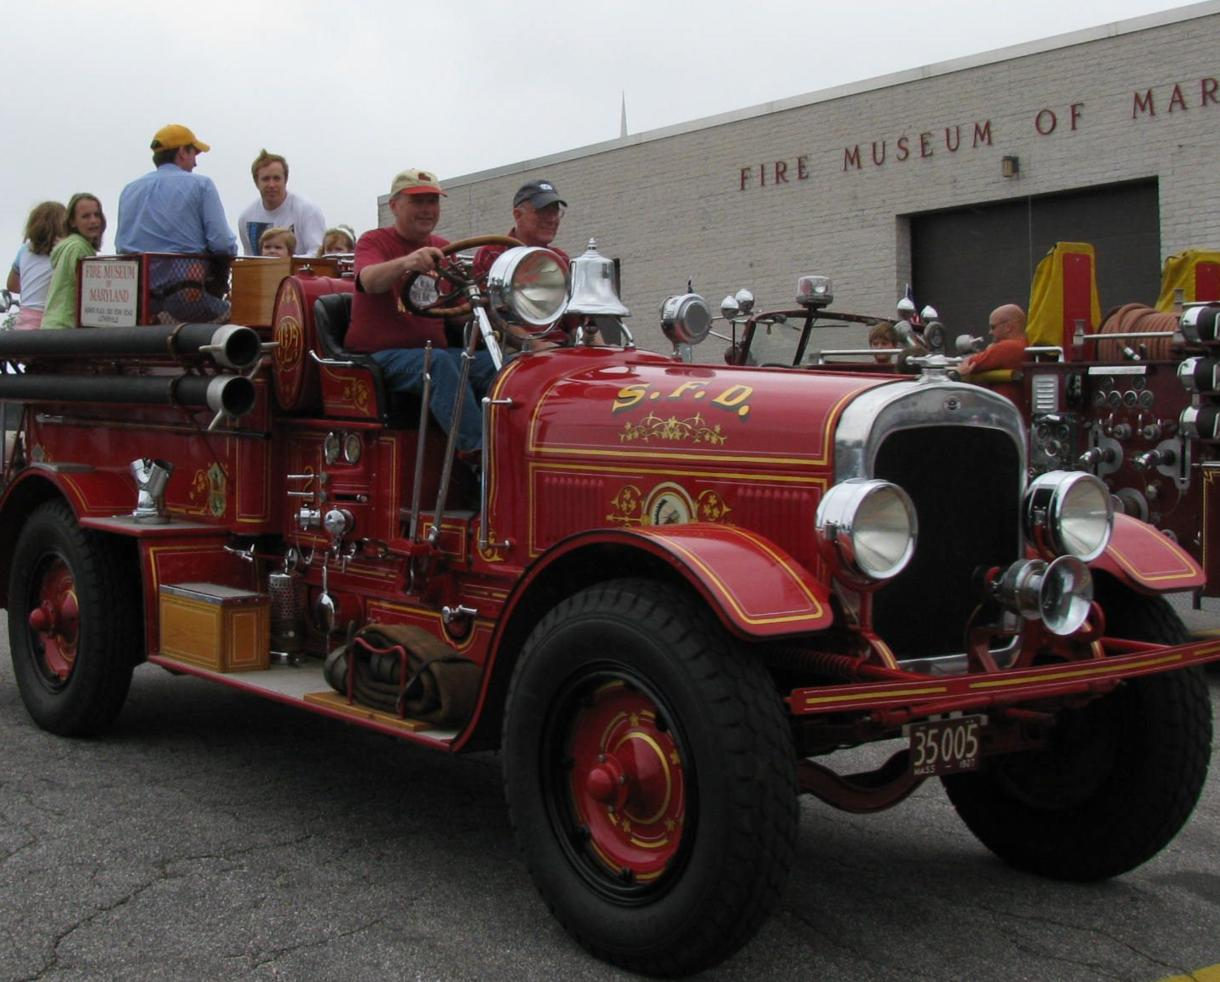 $10 for Fire Museum of Maryland Admission for 2 - Holiday Events! (42% off)